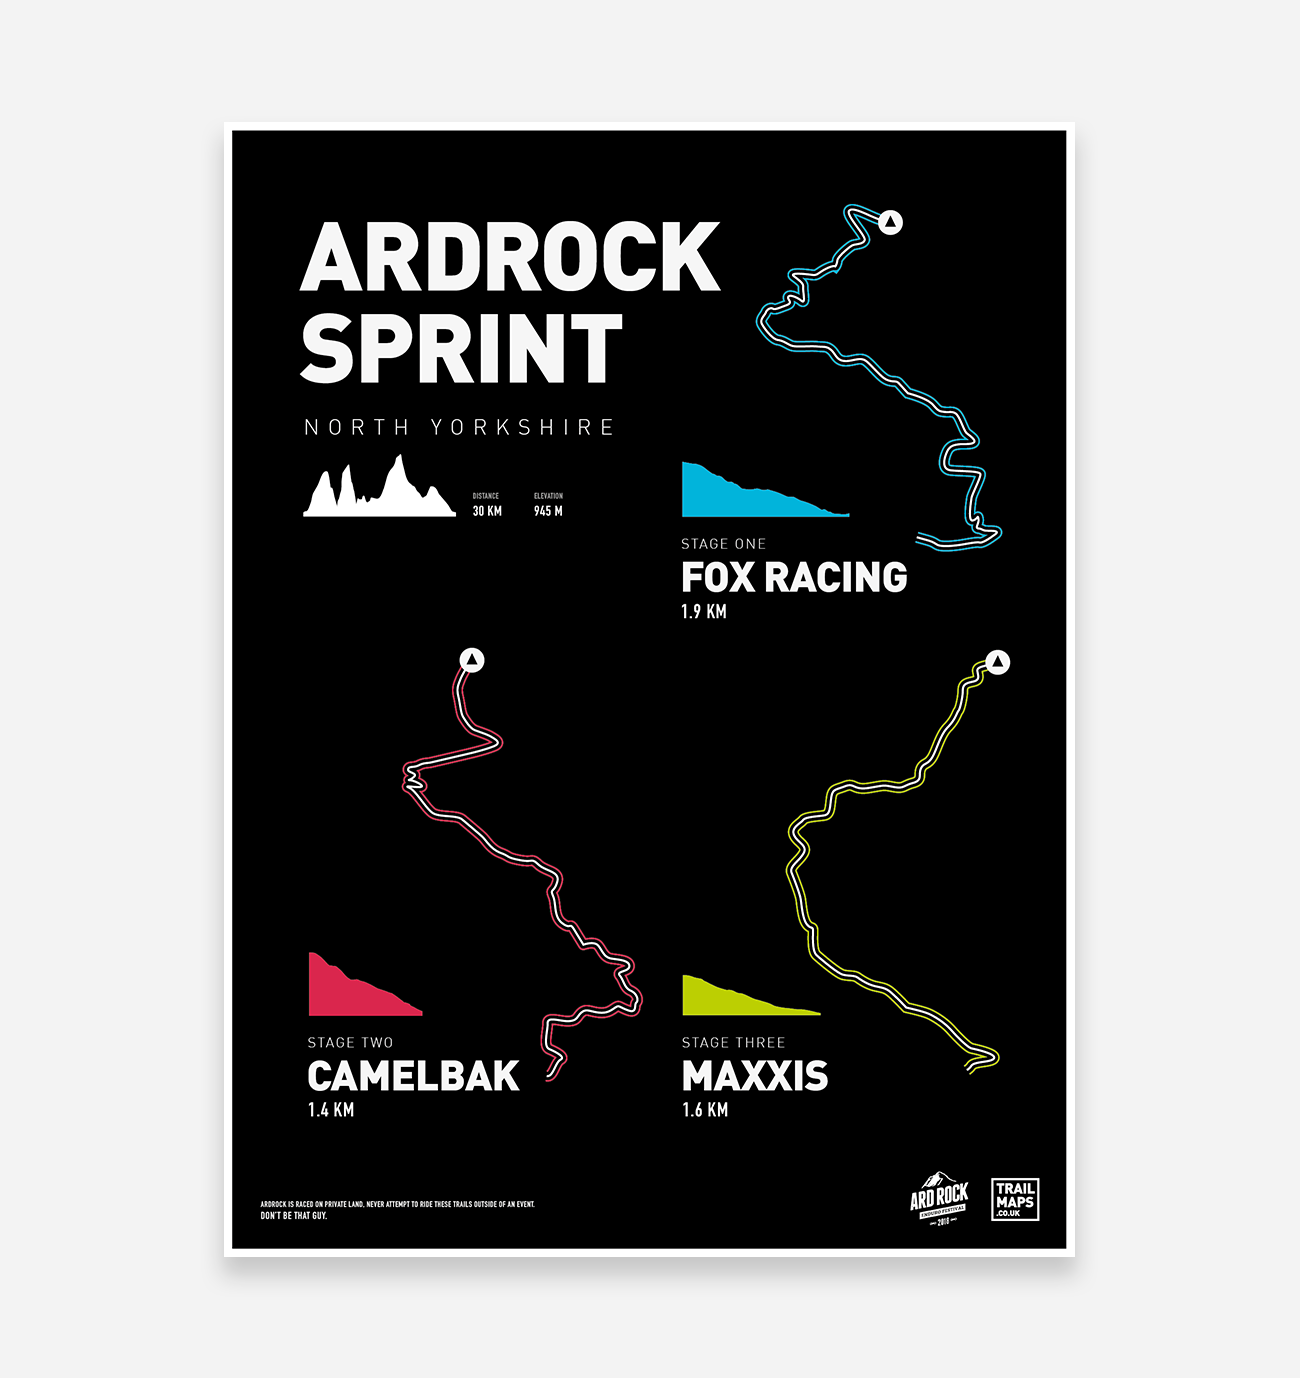 Ardrock Sprint 2018 - TrailMaps.co.uk